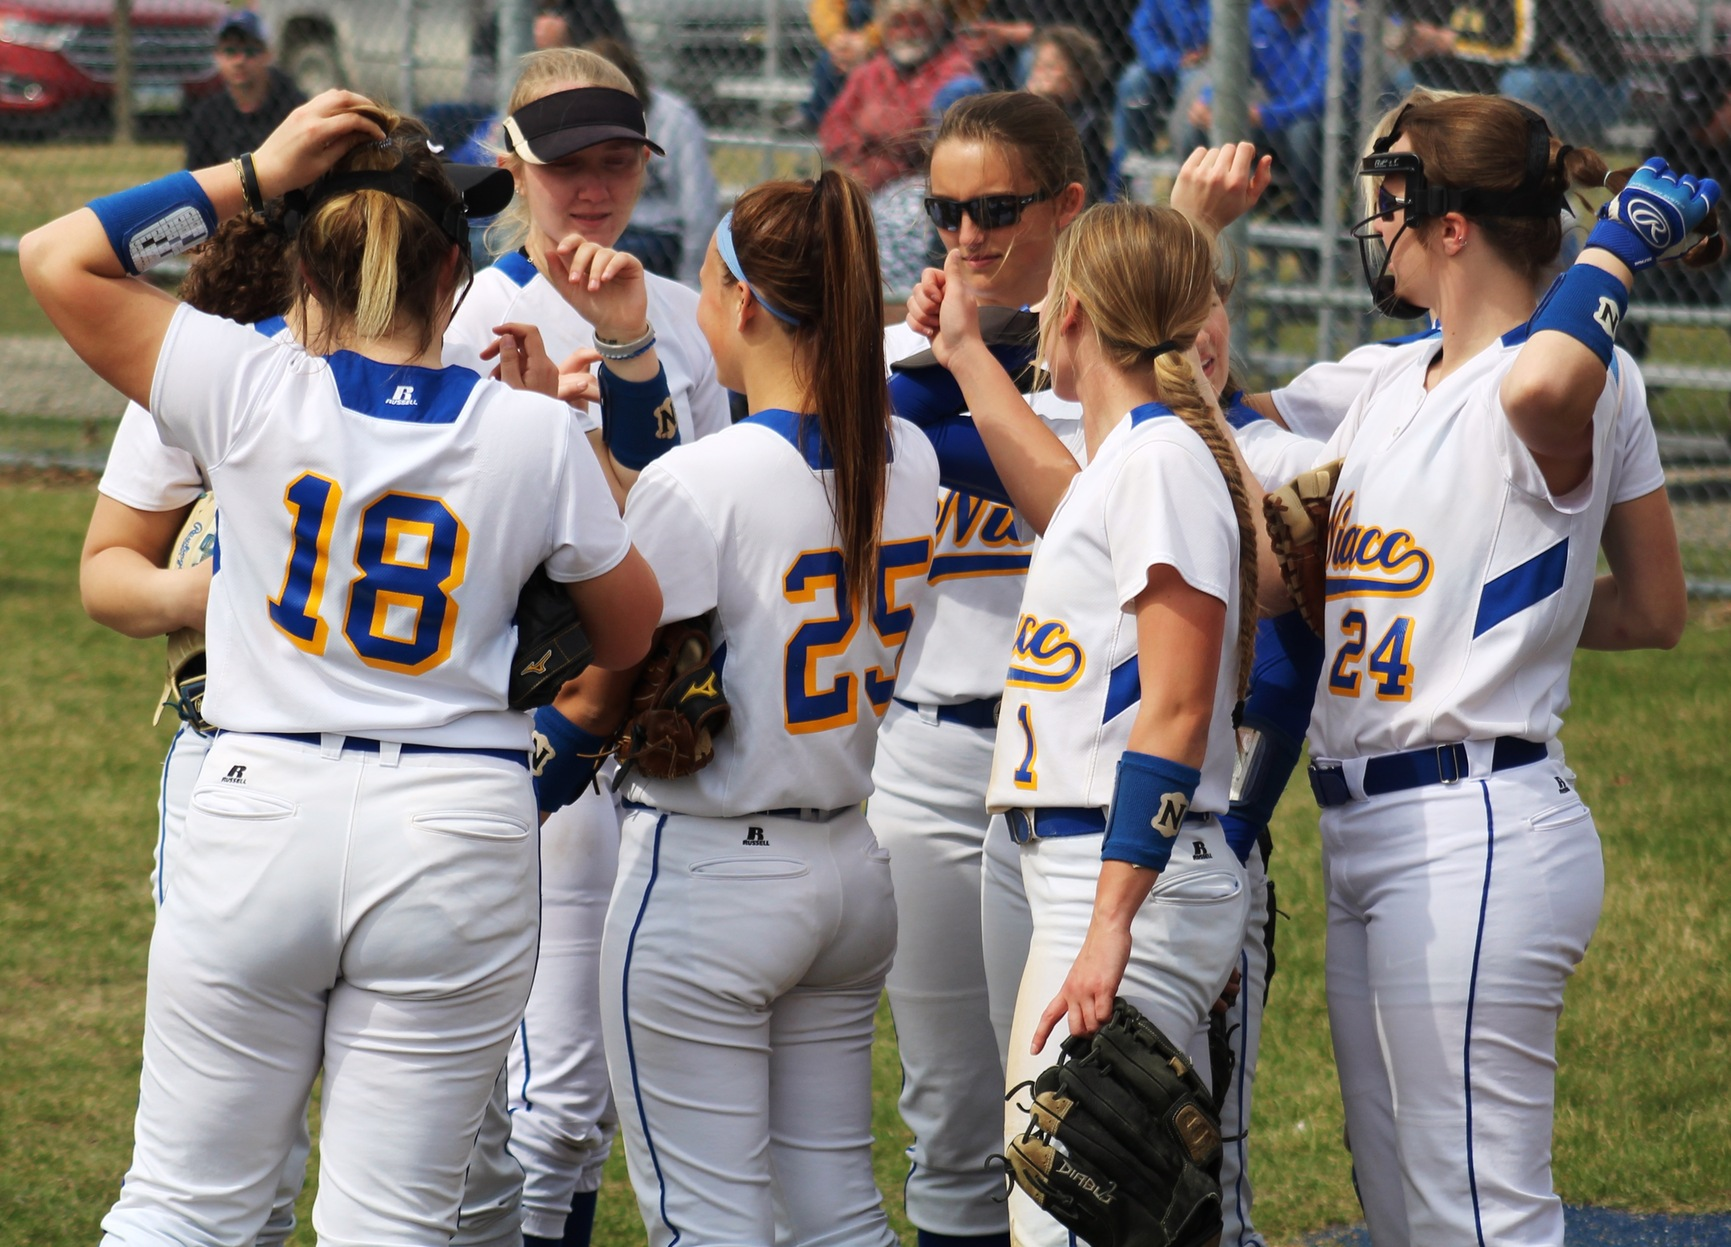 The NIACC softball team plays at DMACC in a doubleheader Friday starting at 1 p.m.